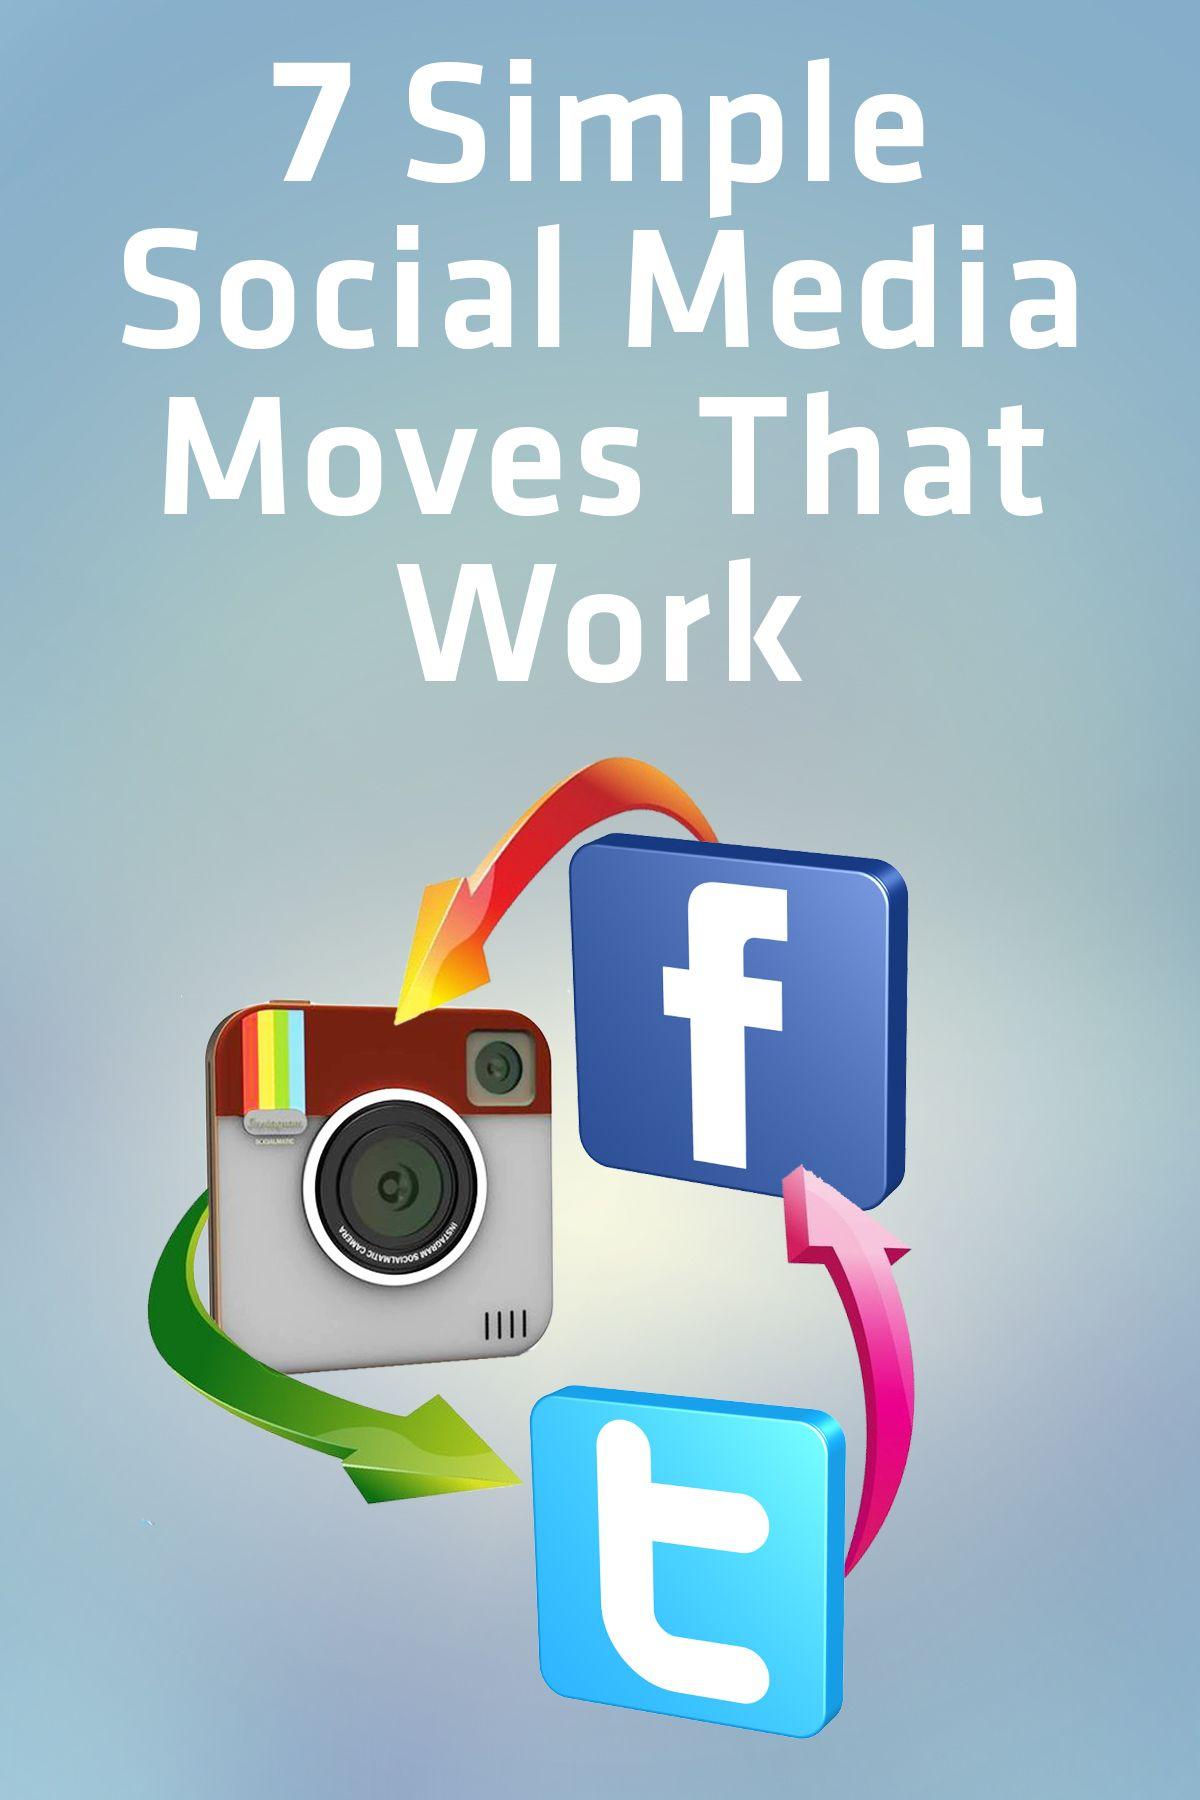 7 Simple Social Media Moves That Work S3Corp